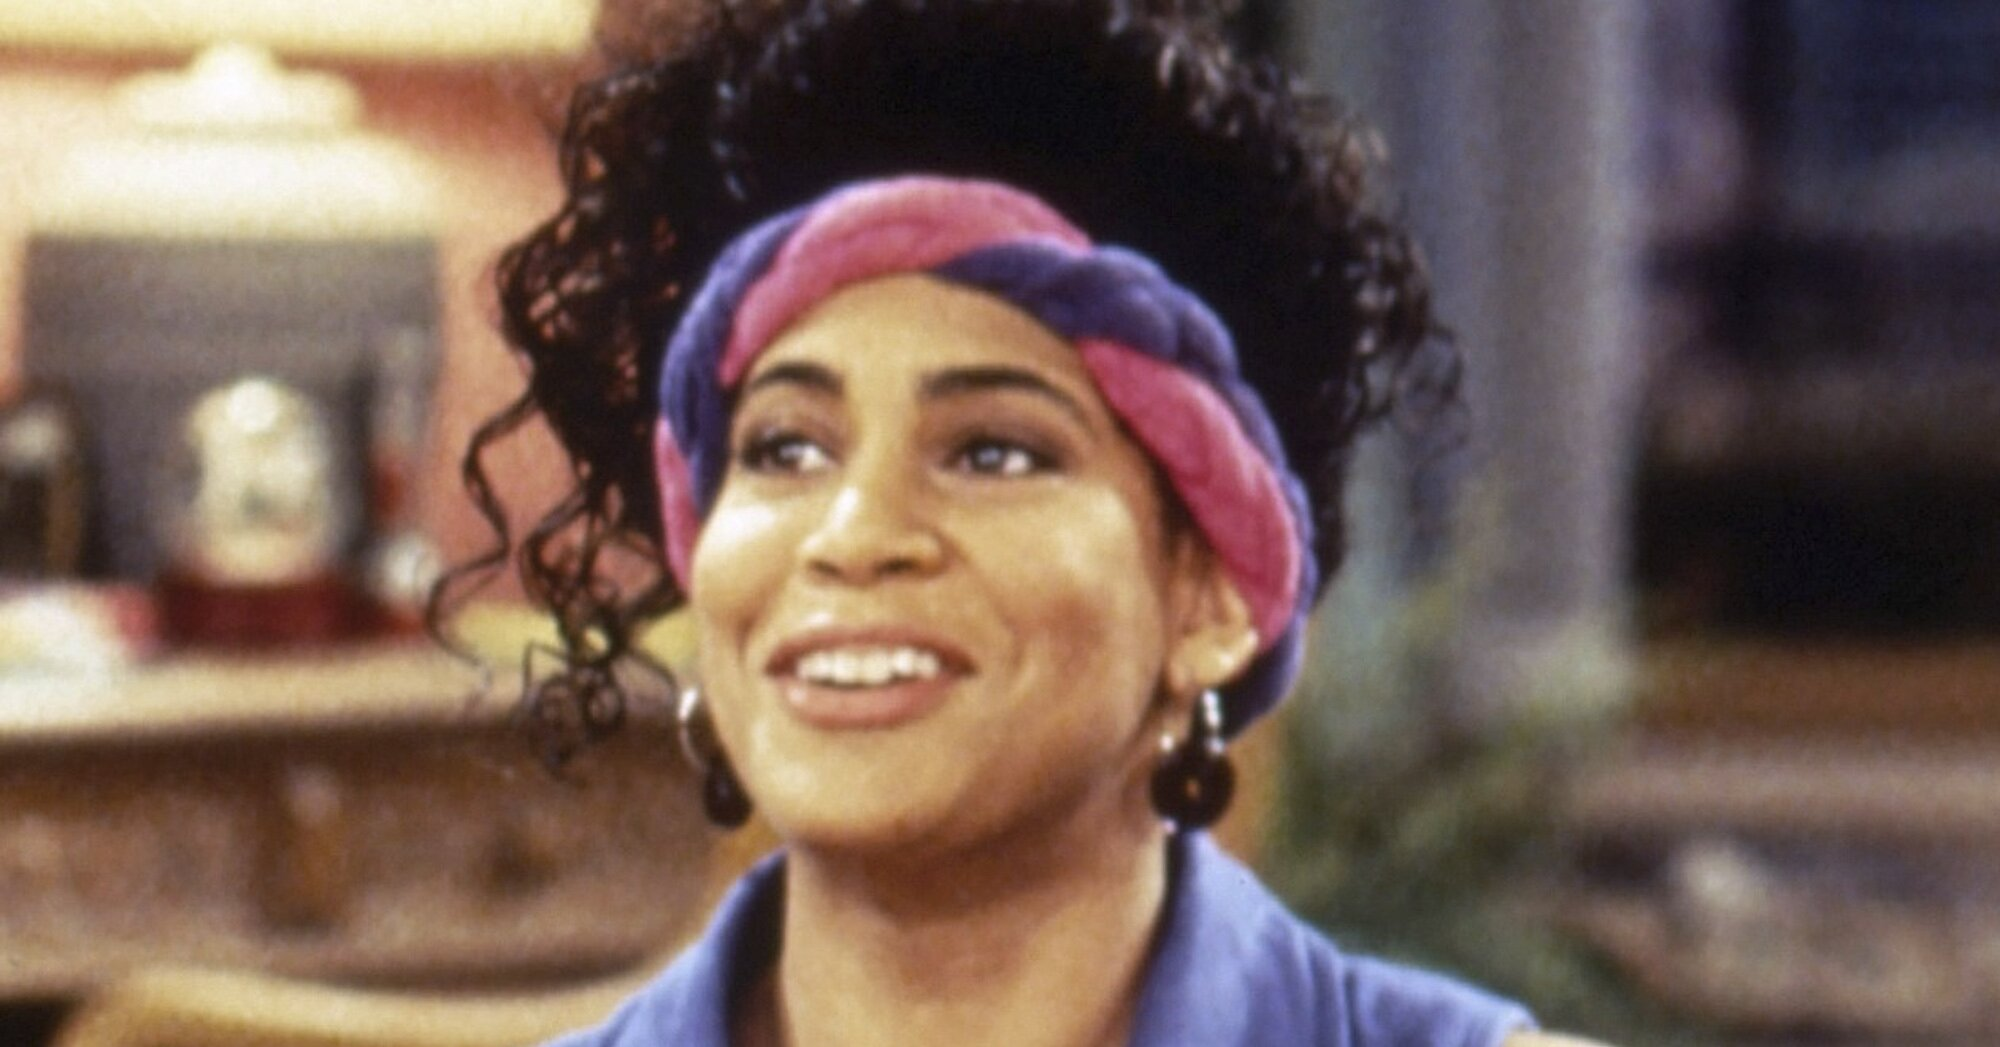 Kim Coles on why 'Living Single' shouldn't just be labeled a 'Black show'